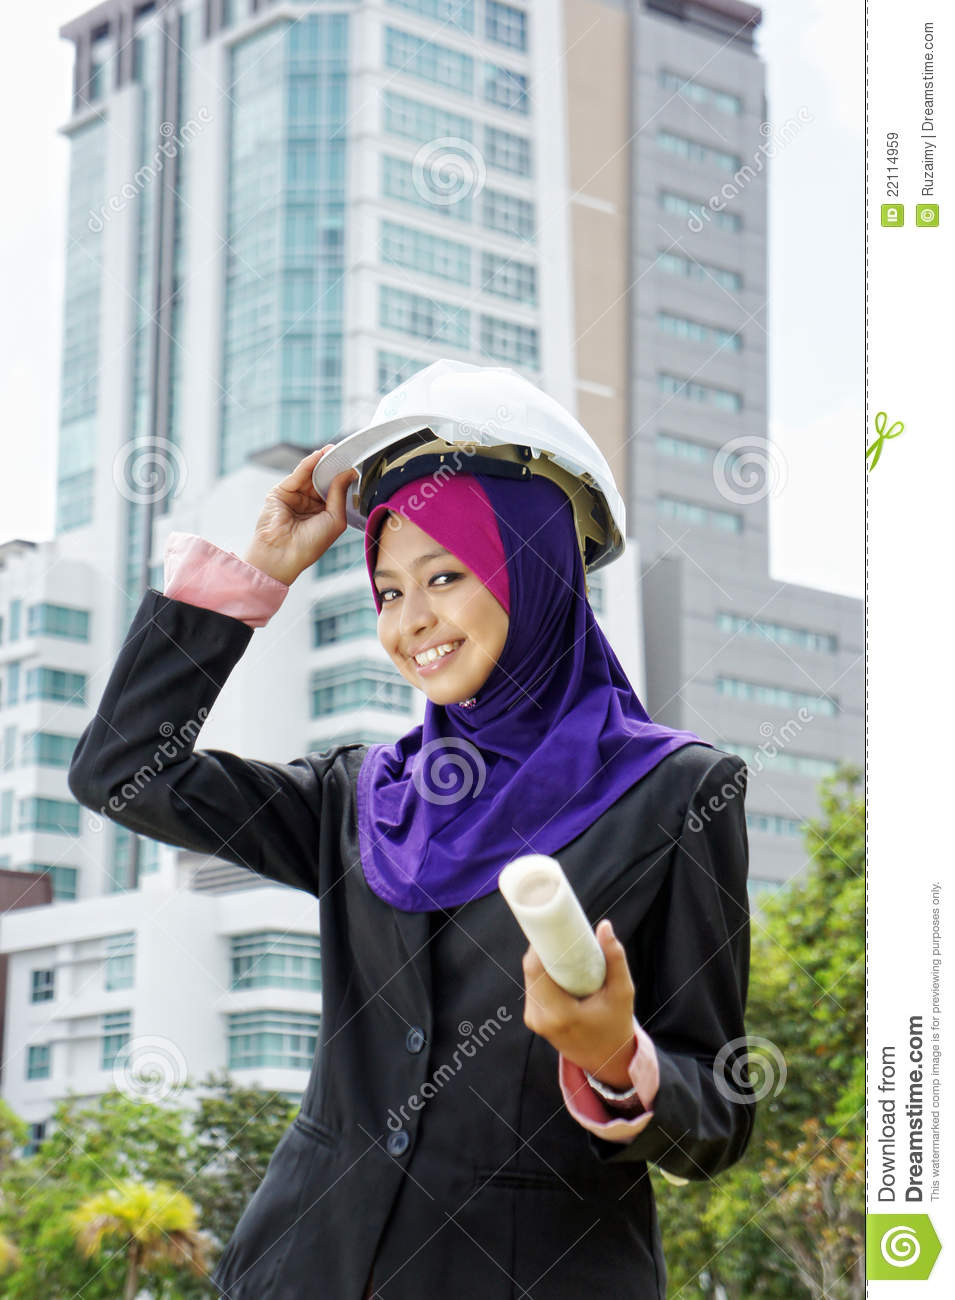 cusseta muslim women dating site Issuu is a digital publishing platform that makes it simple to publish magazines title: nwh-2-17-2013, author: shaw media dating from the 1860s through.